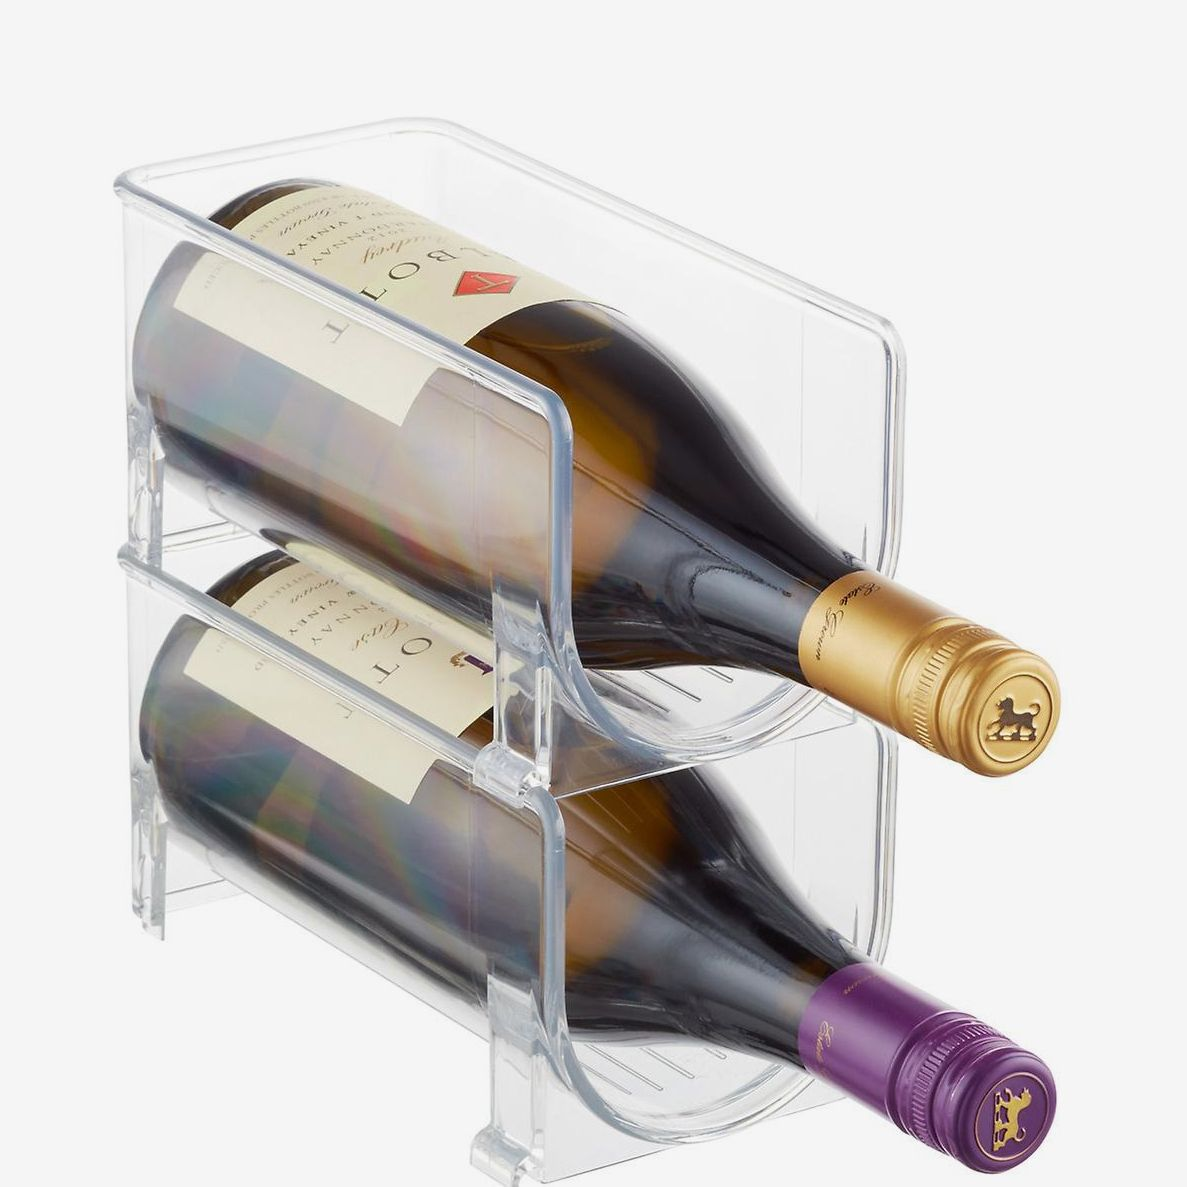 Two stacked clear storage bins containing two bottles of wine